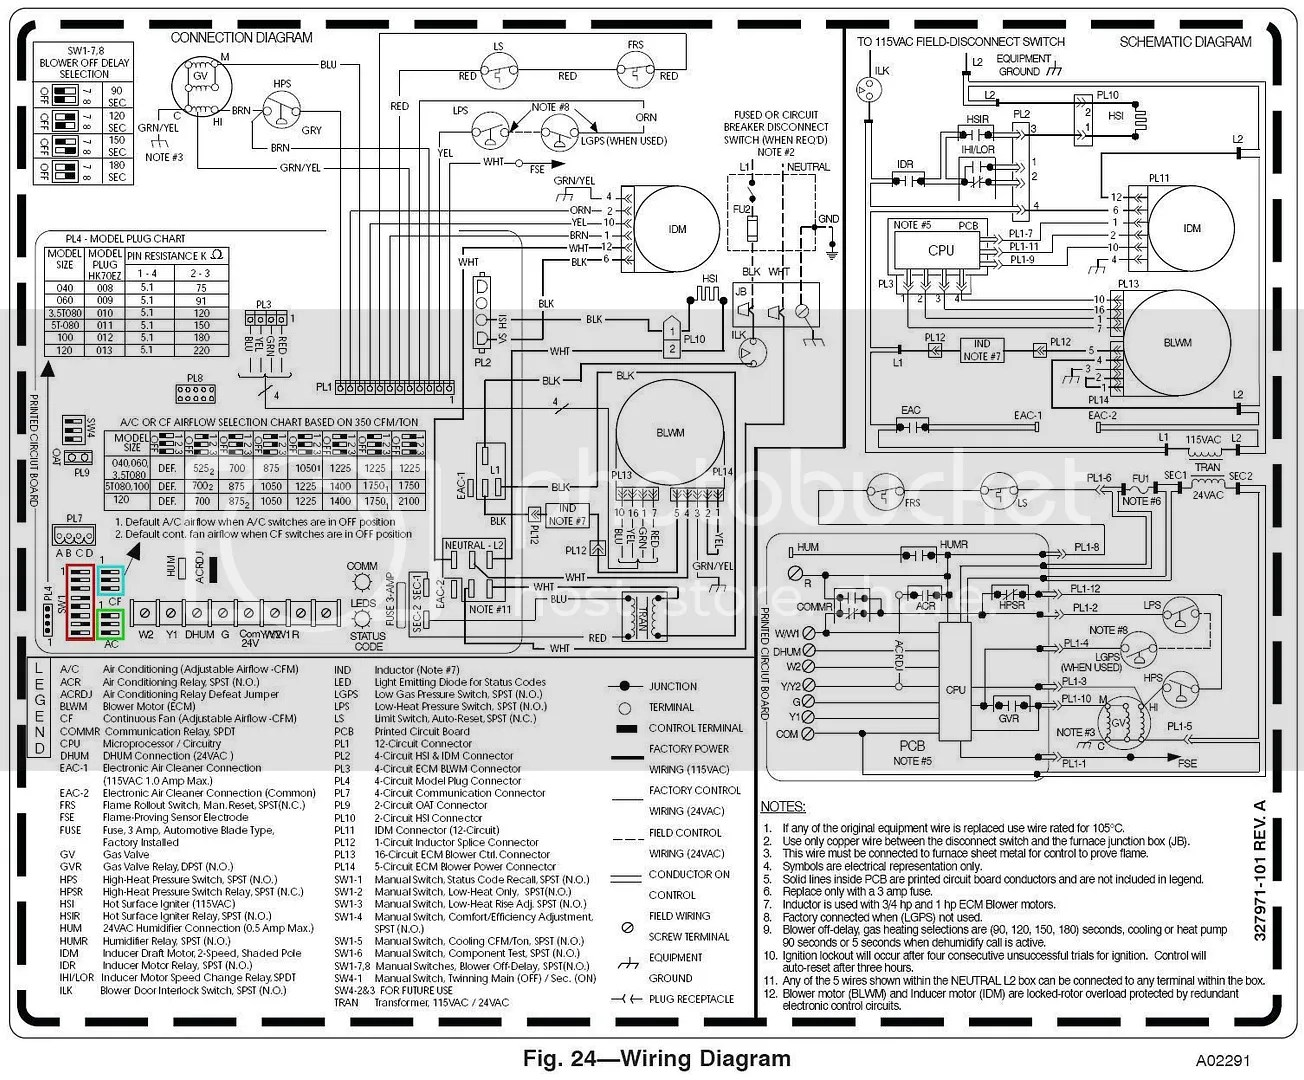 hight resolution of ecm motor wiring diagram for hvac wiring diagram third level carrier ecm motor wiring diagram